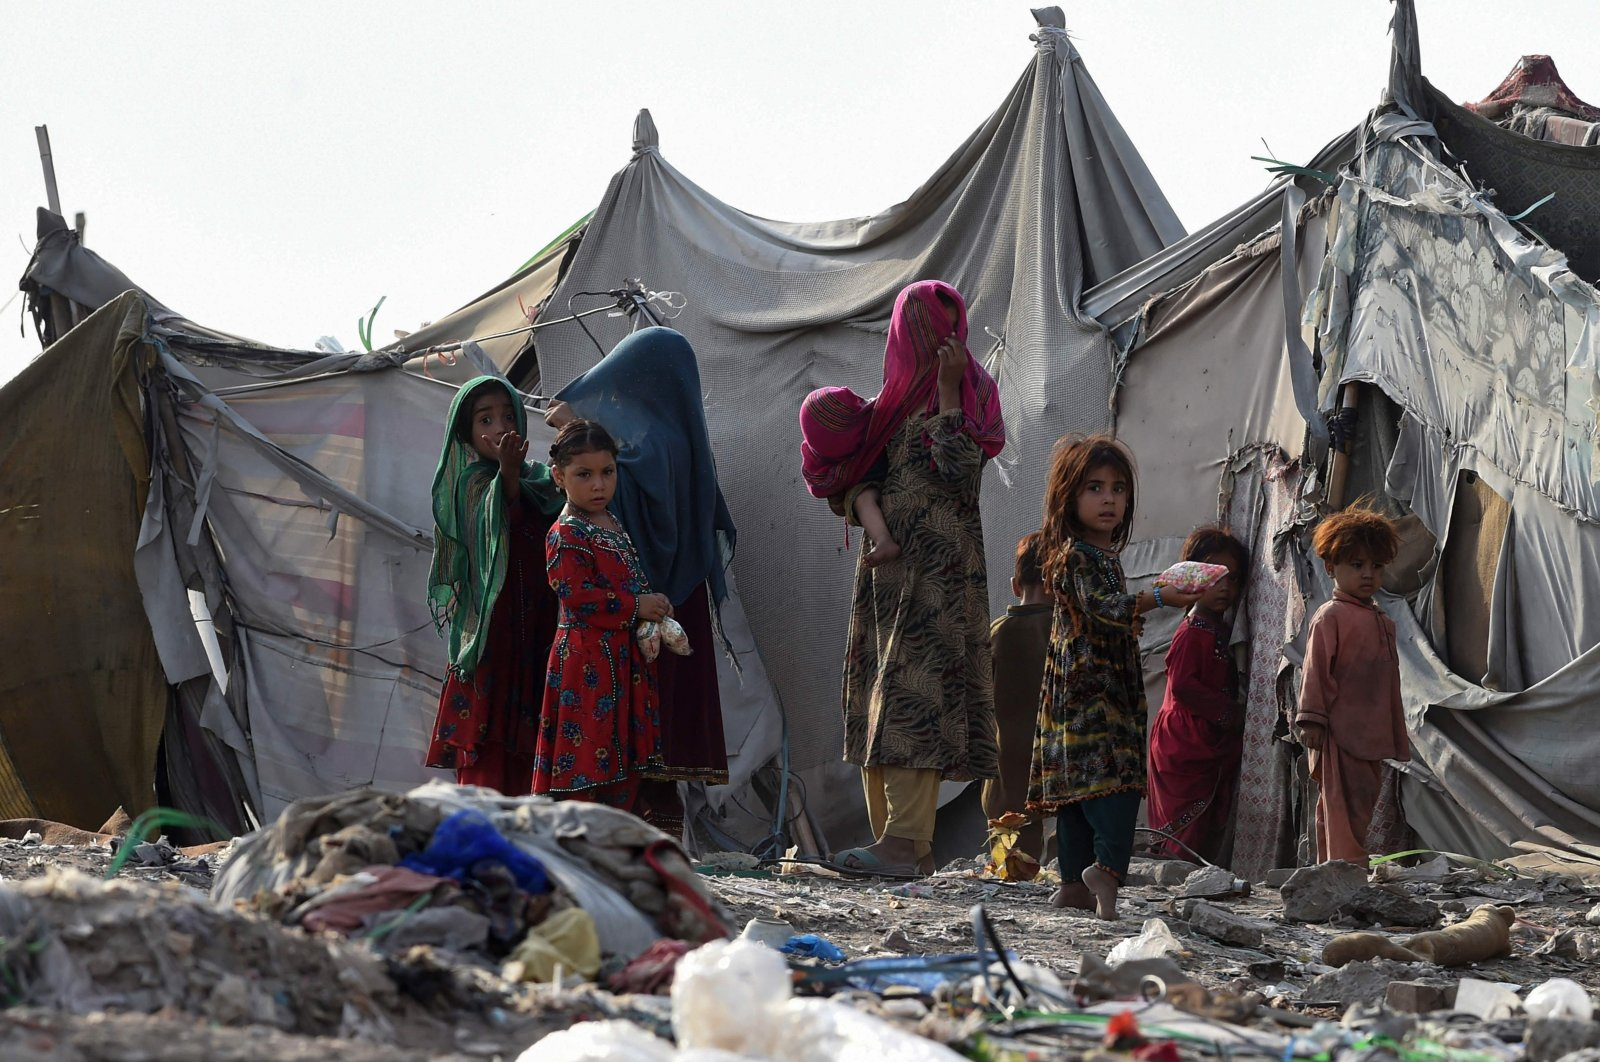 Children of Afghan refugees play outside tents in Afghan Basti area on the outskirts of Lahore on June 19, 2021 on the eve ofWorld Refugee Day. (Photo by Arif ALI / AFP)